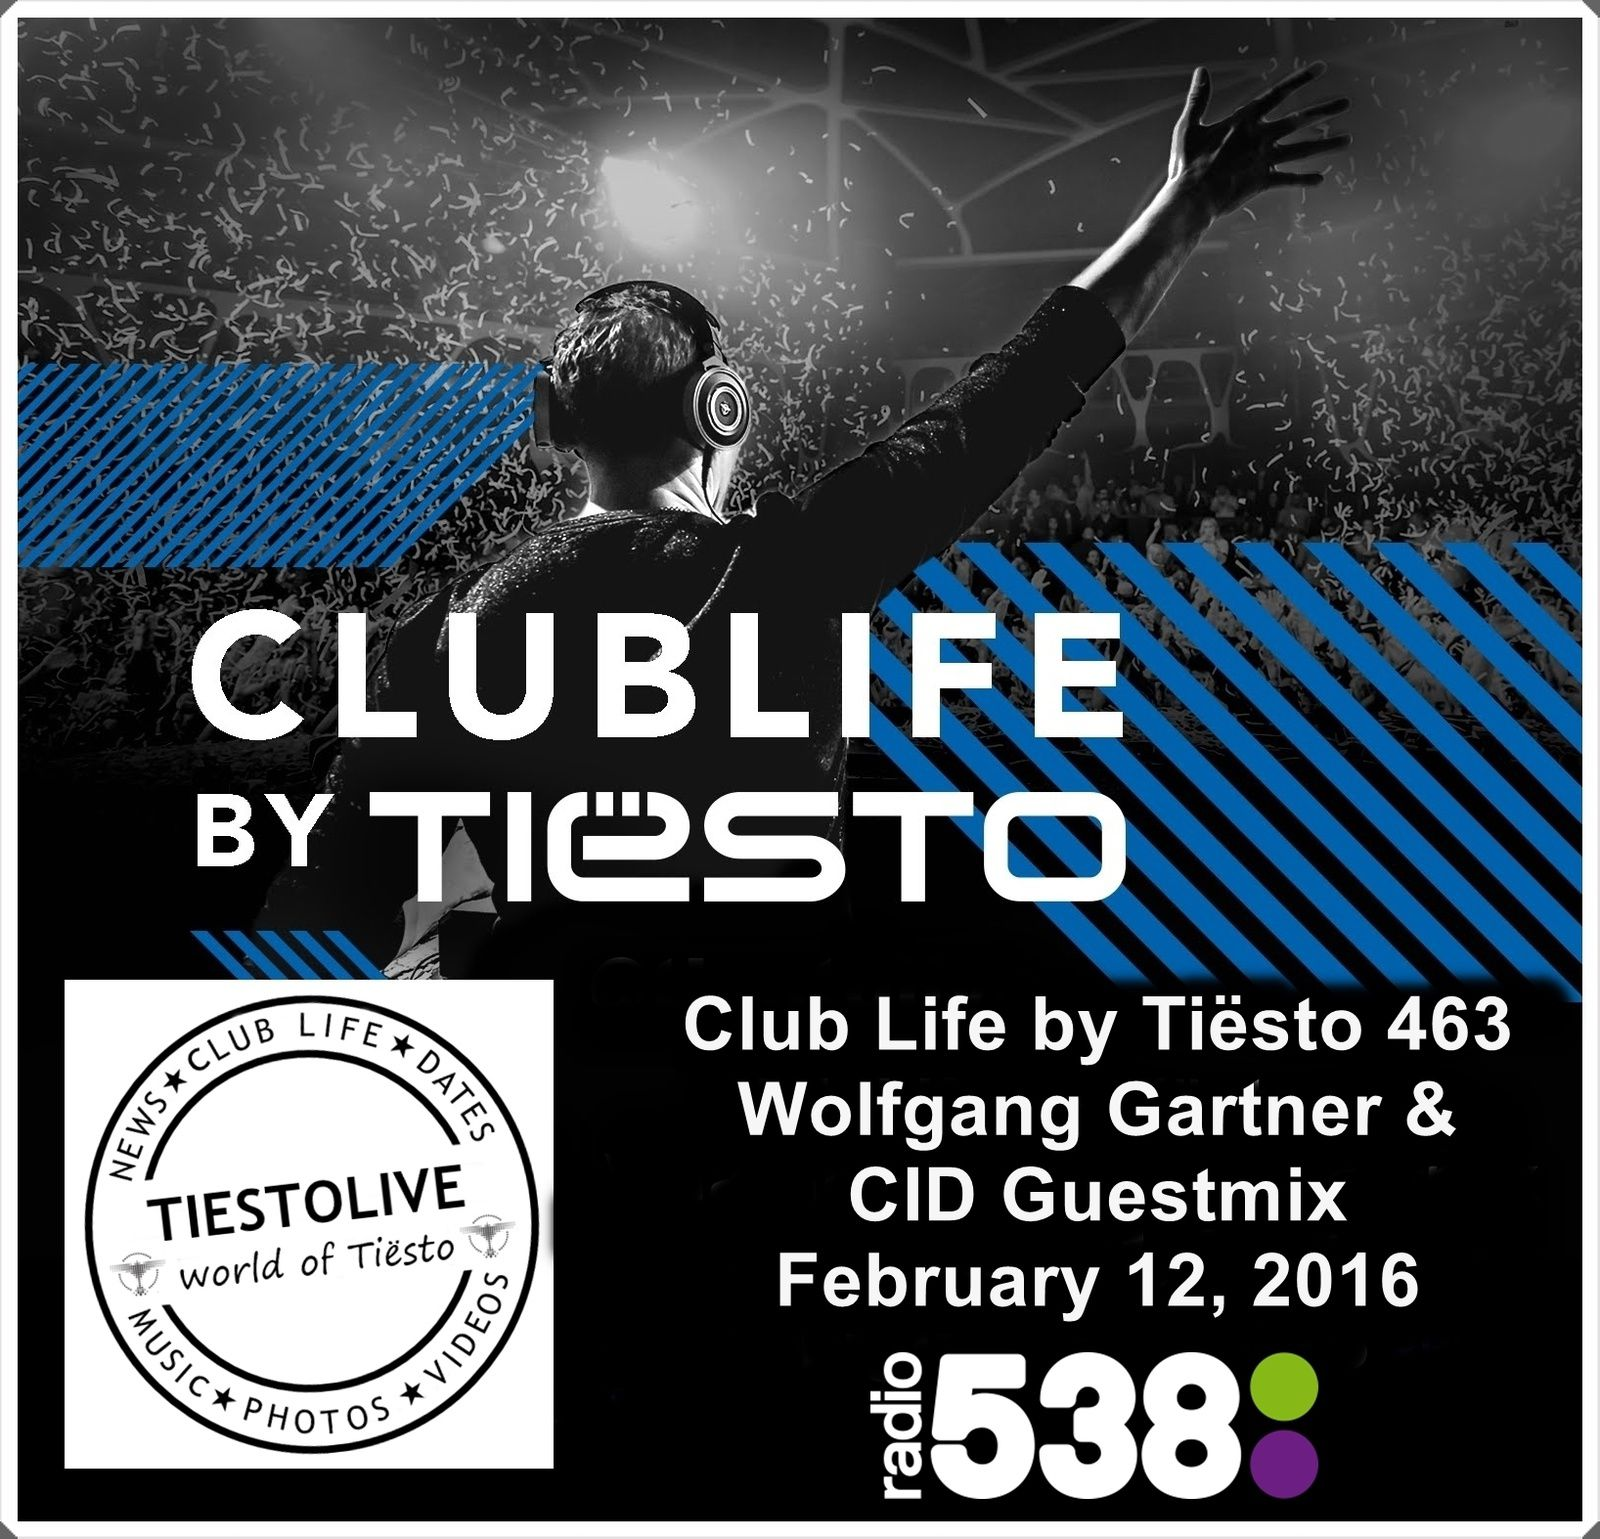 Club Life by Tiësto 463 - Wolfgang Gartner & CID Guestmix - February 12, 2016